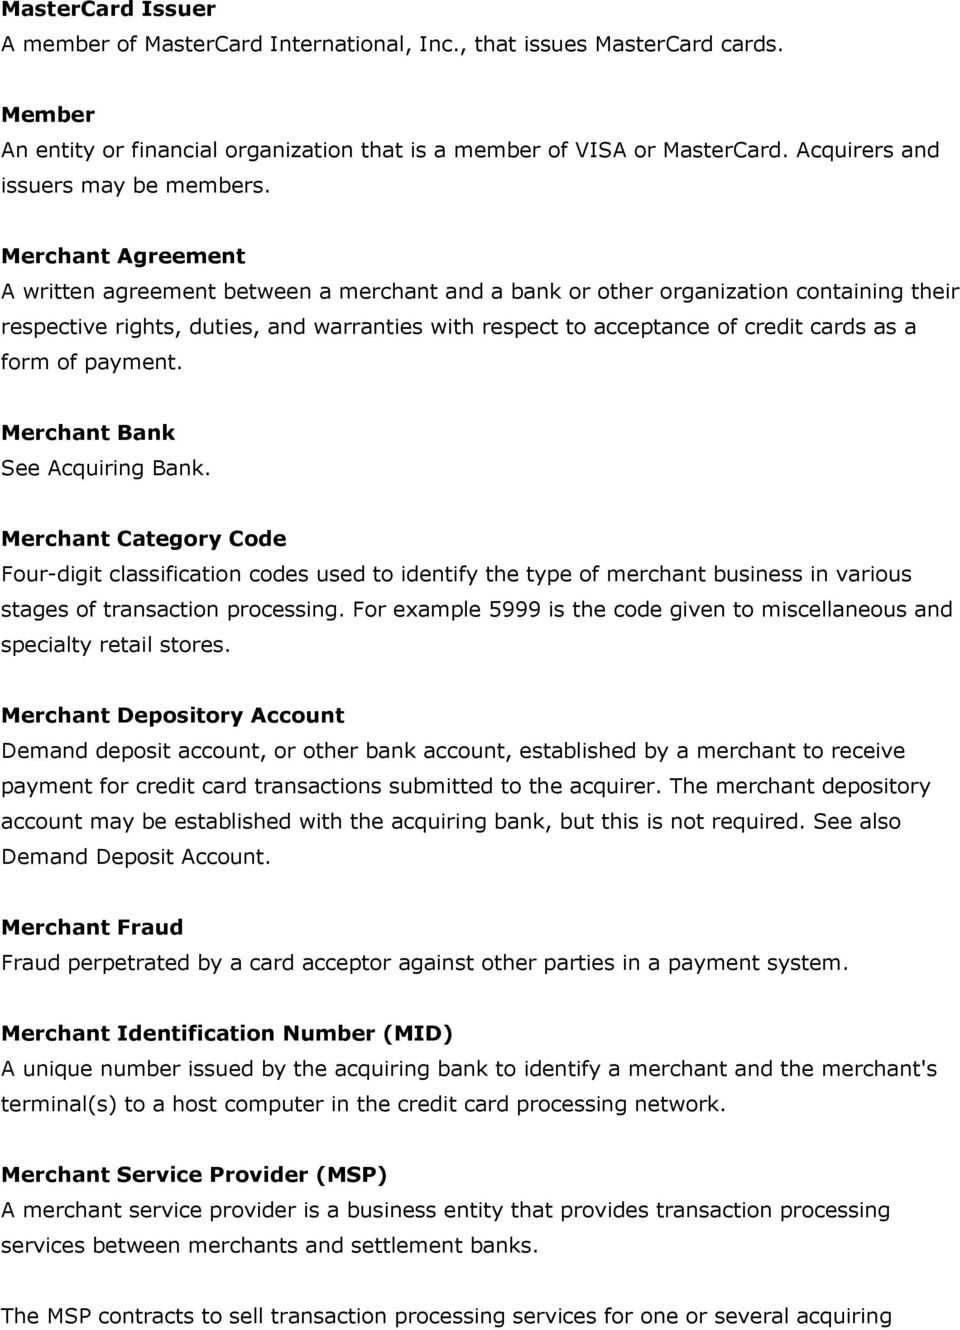 Merchant Agreement A written agreement between a merchant and a bank or other organization containing their respective rights, duties, and warranties with respect to acceptance of credit cards as a